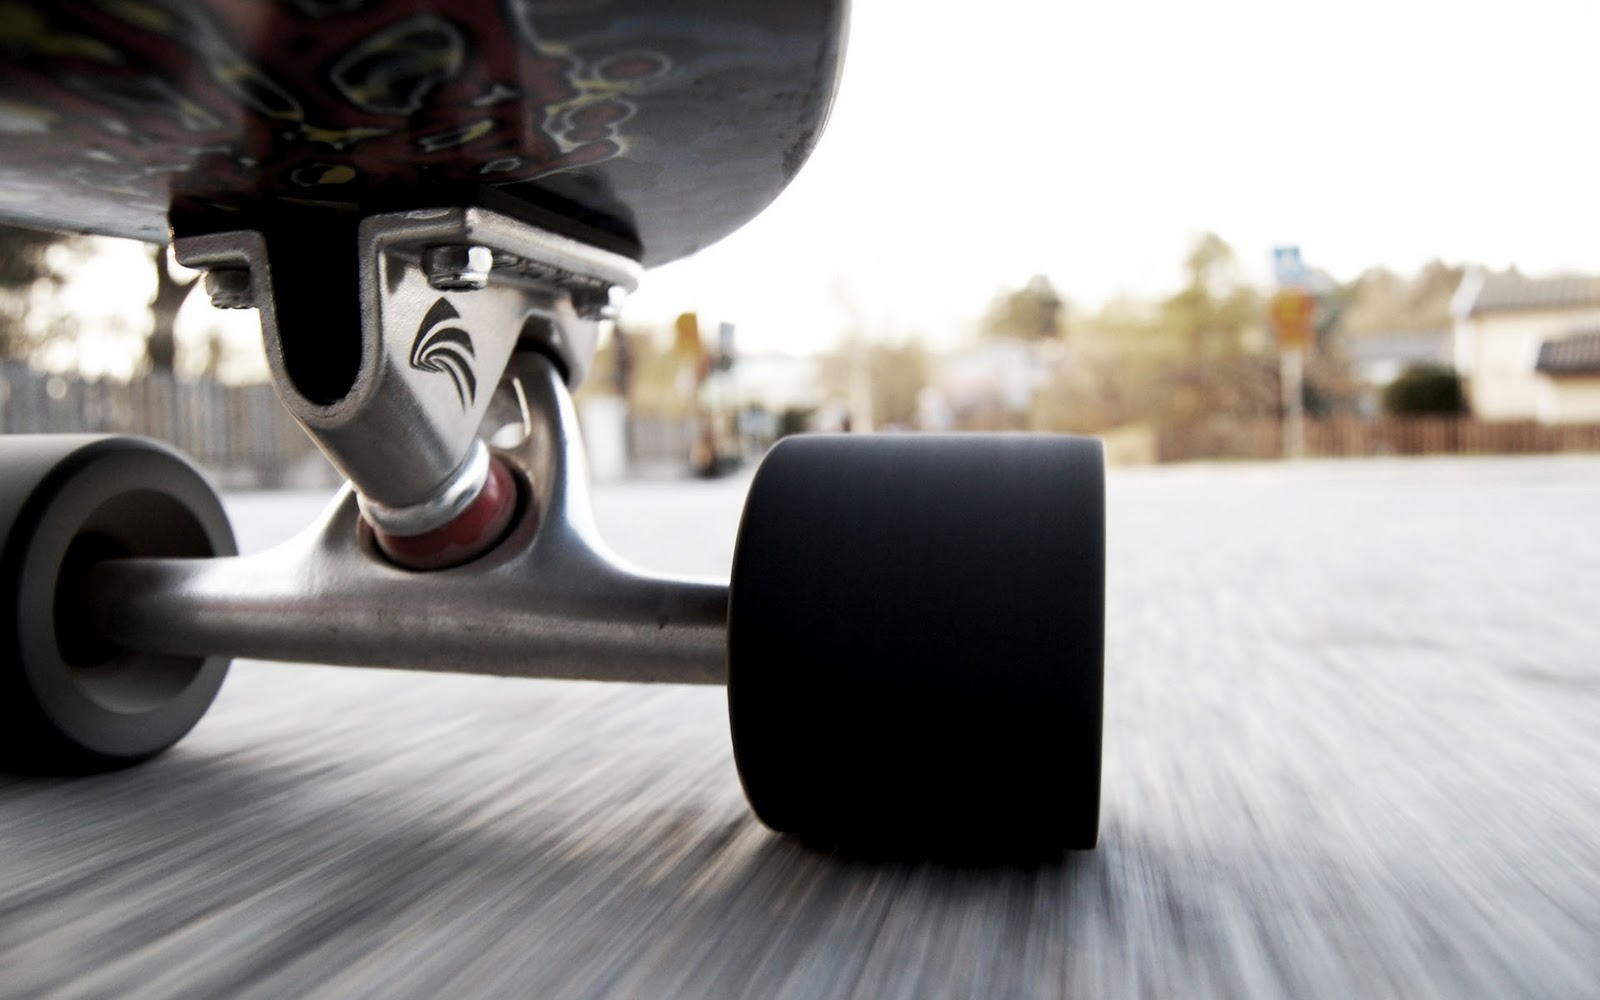 Skateboard HD Wallpaper 1600x1000